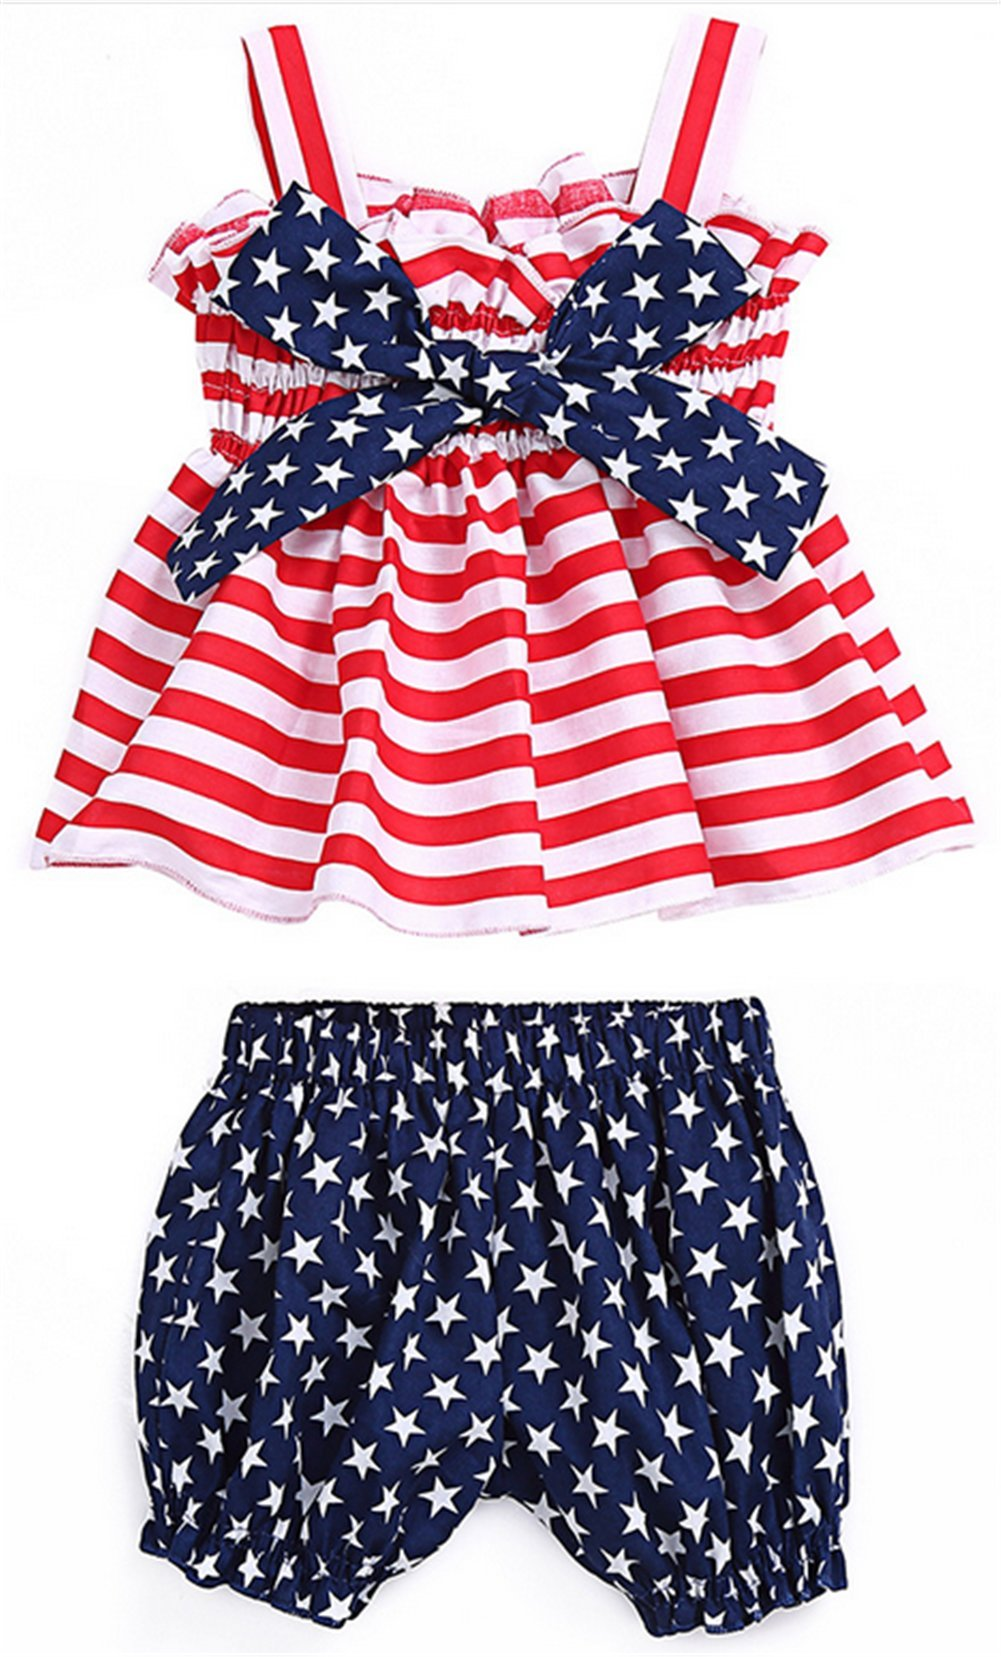 Baby Girls 4th of July Star Stripe Strap Ruffle Tops Blouse+Shorts 2Pcs Set Size 12-18 Months (Red)